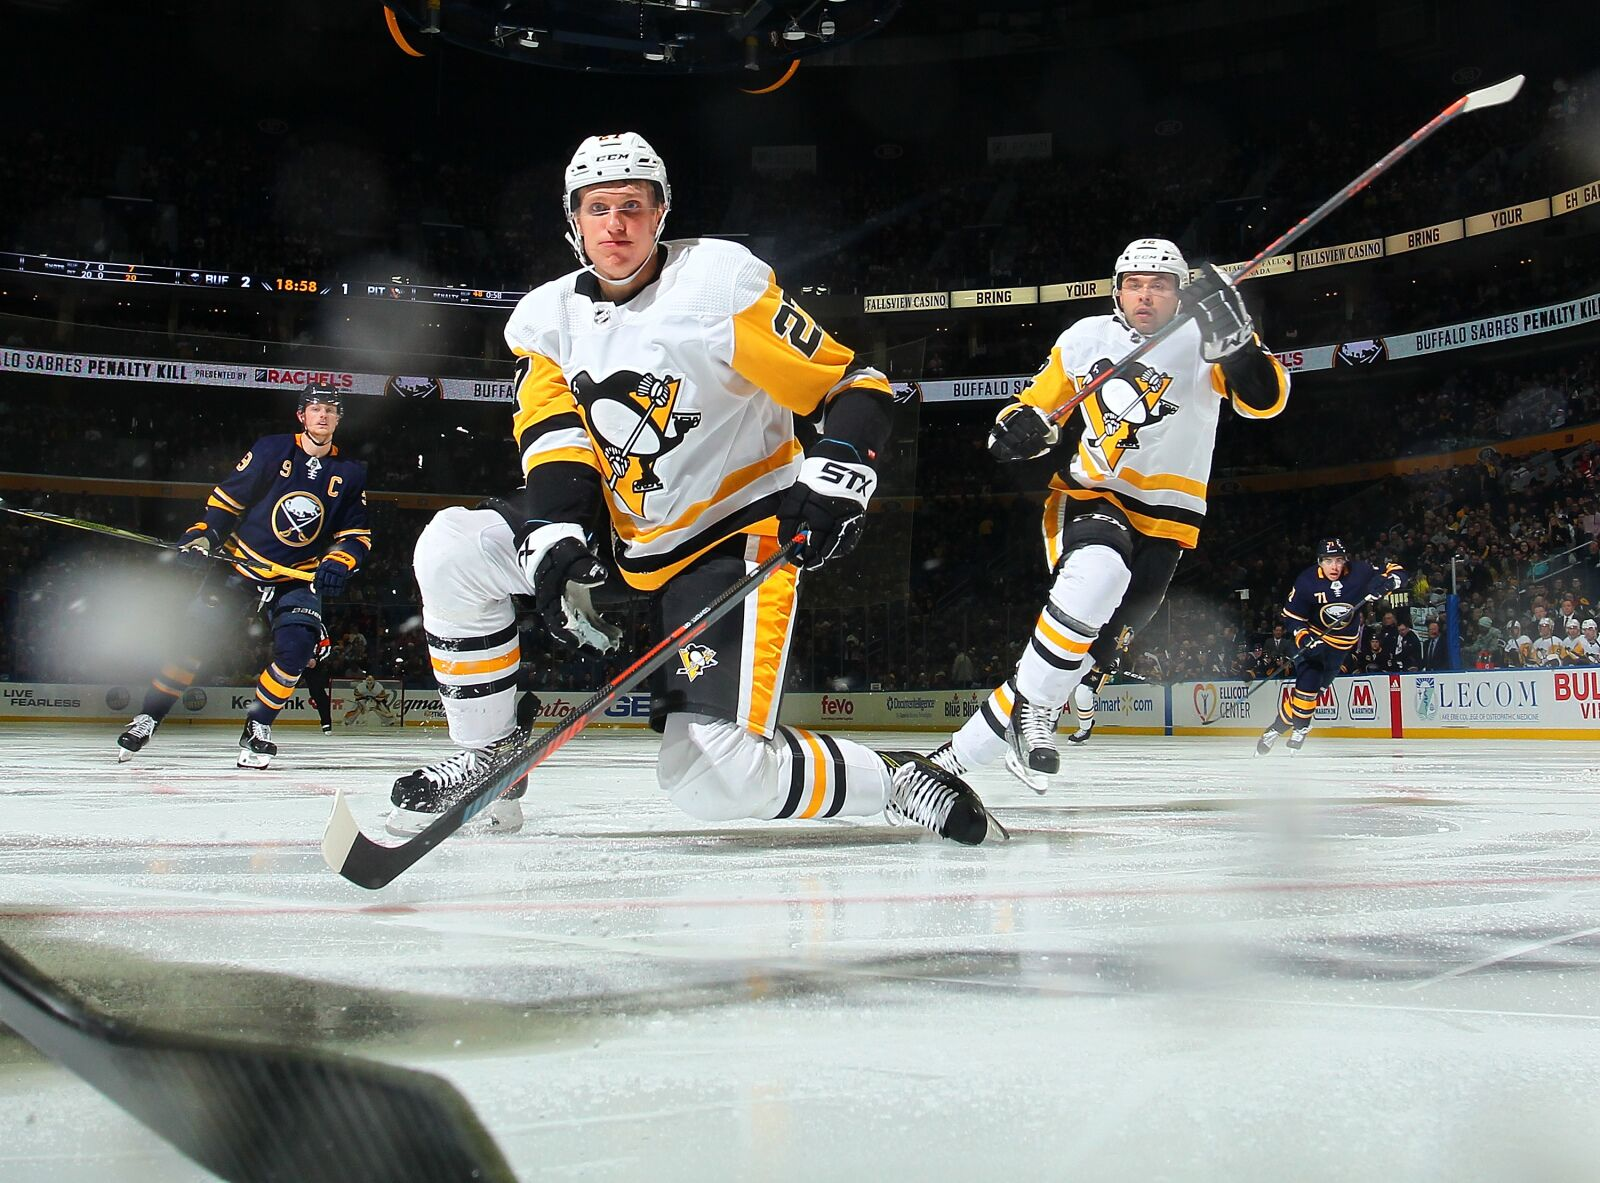 Pittsburgh Penguins appear to have found an above average third-line